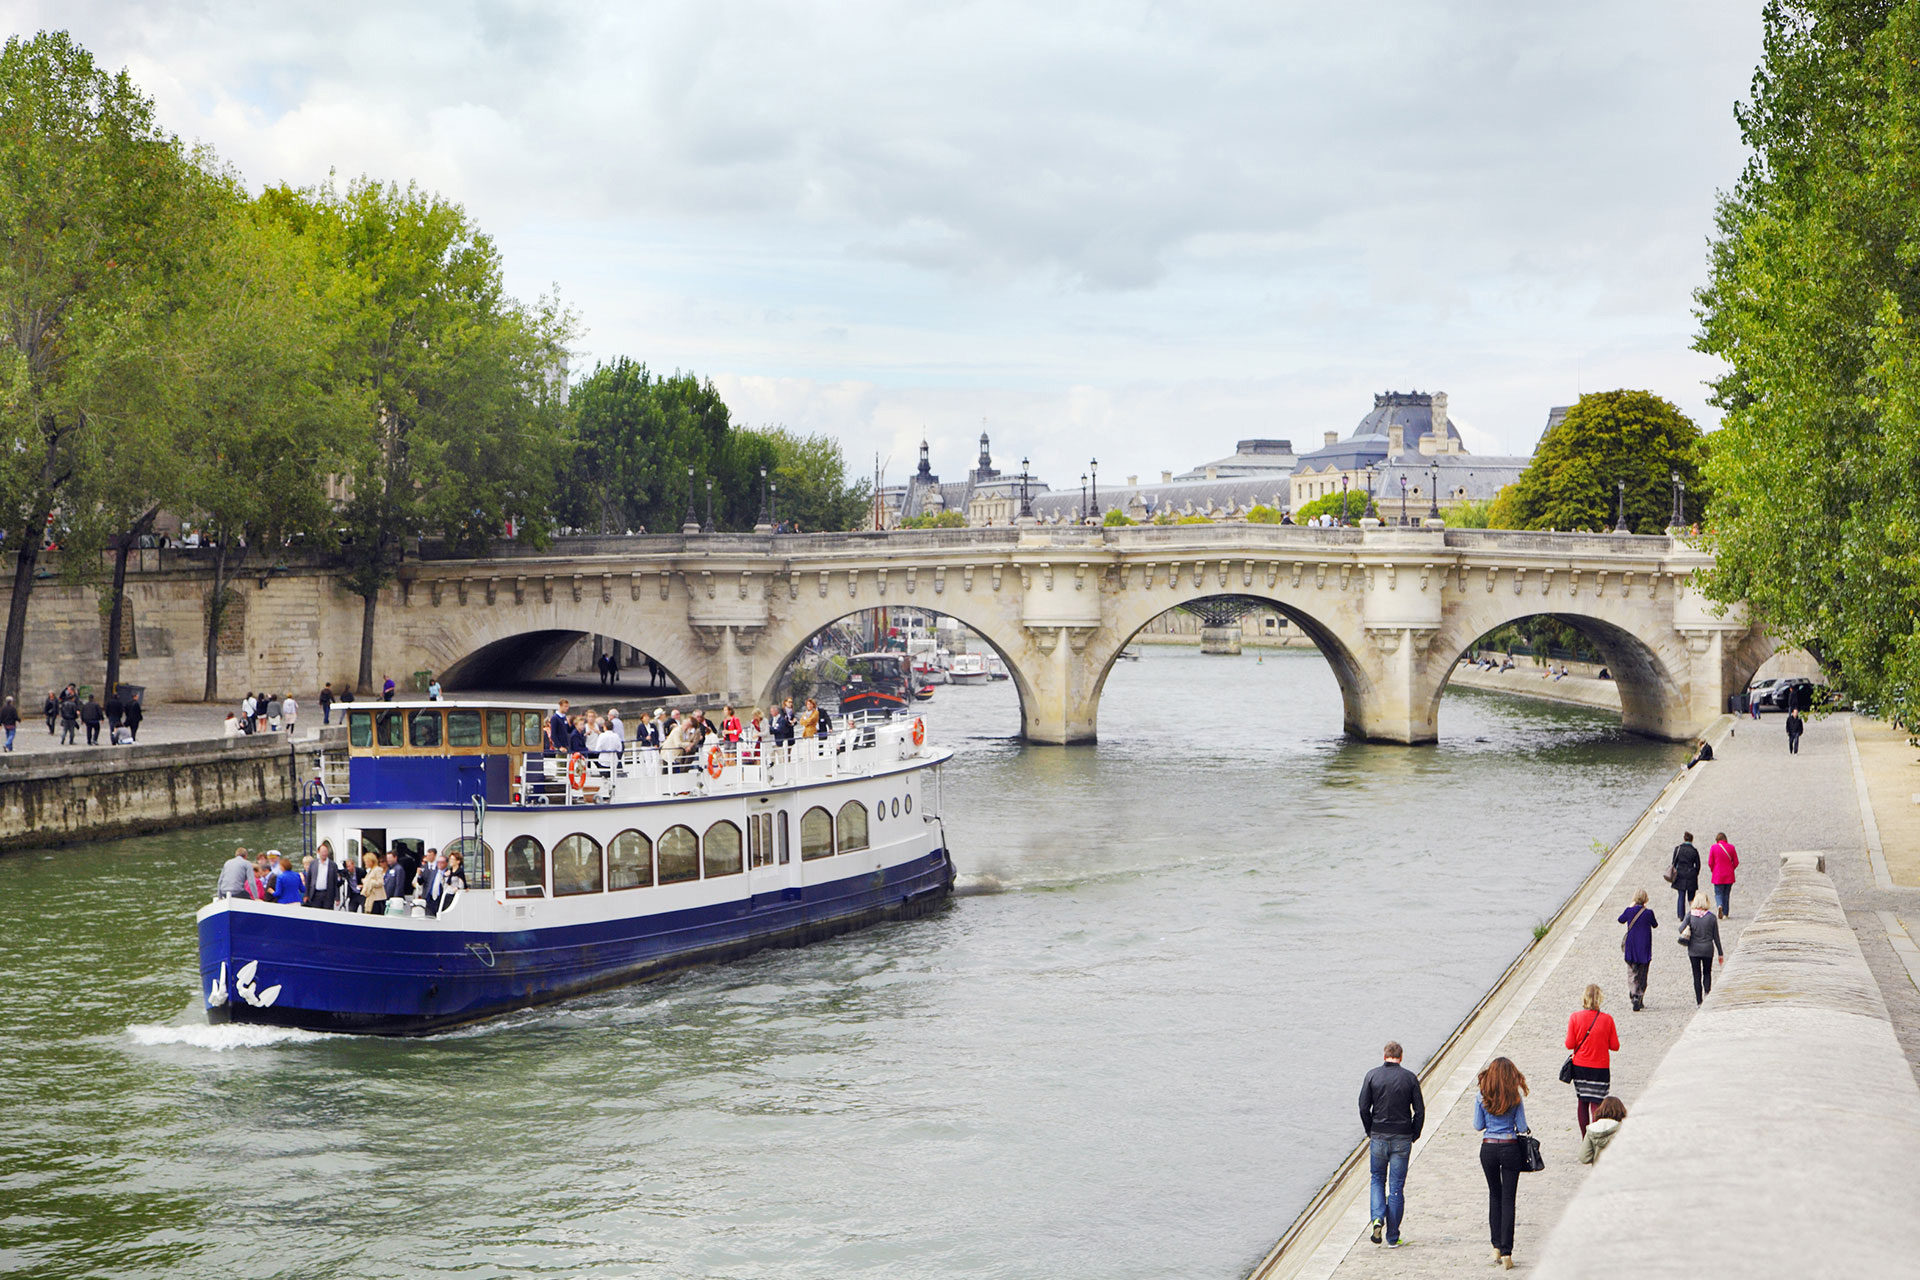 Take a cruise along the Seine to see the sights